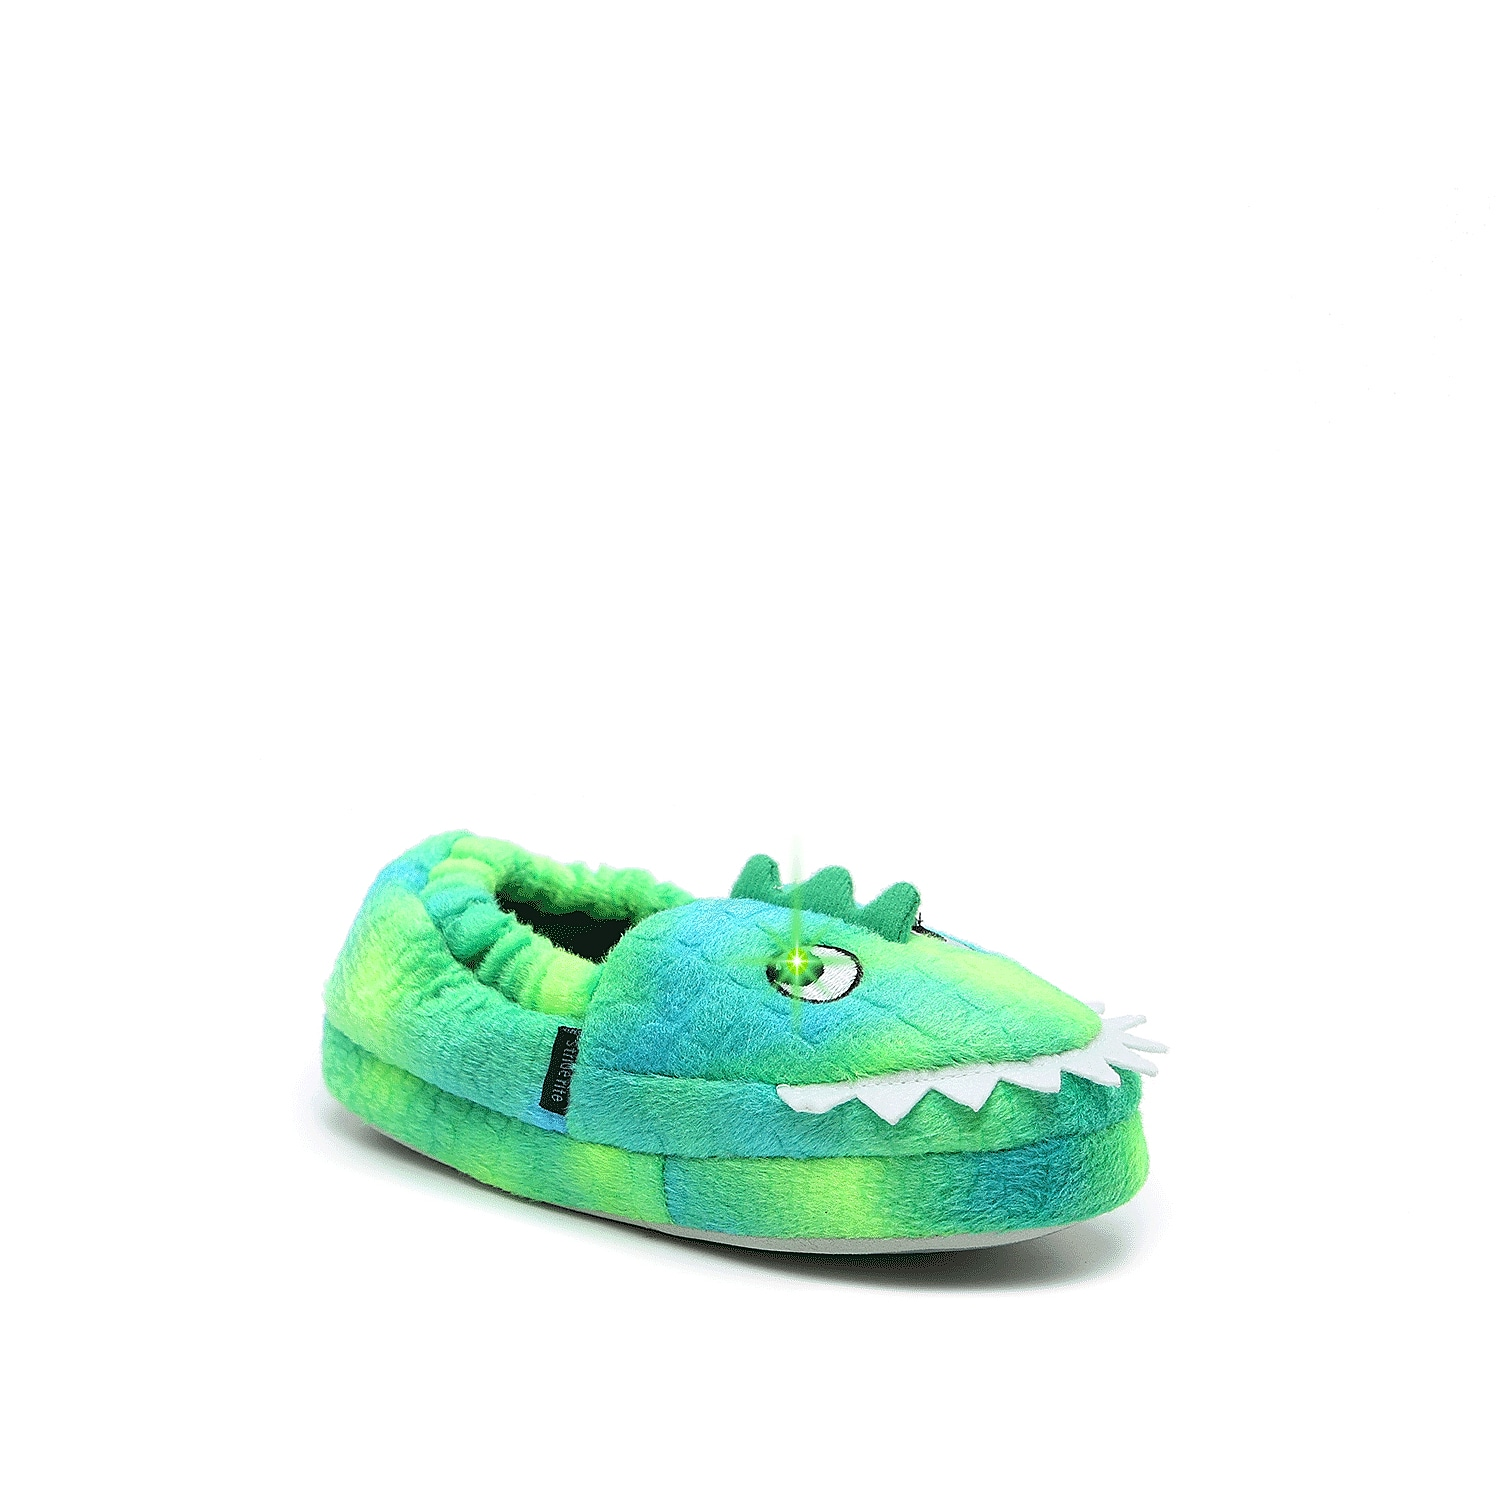 Upgrade your little one\\\'s nighttime routine with the Axel Alligator slipper from Stride Rite. Light-up technology will keep them stepping around in style! Not sure which size to order? Clickhereto check out our Kids' Measuring Guide! For more helpful tips and sizing FAQs, clickhere.